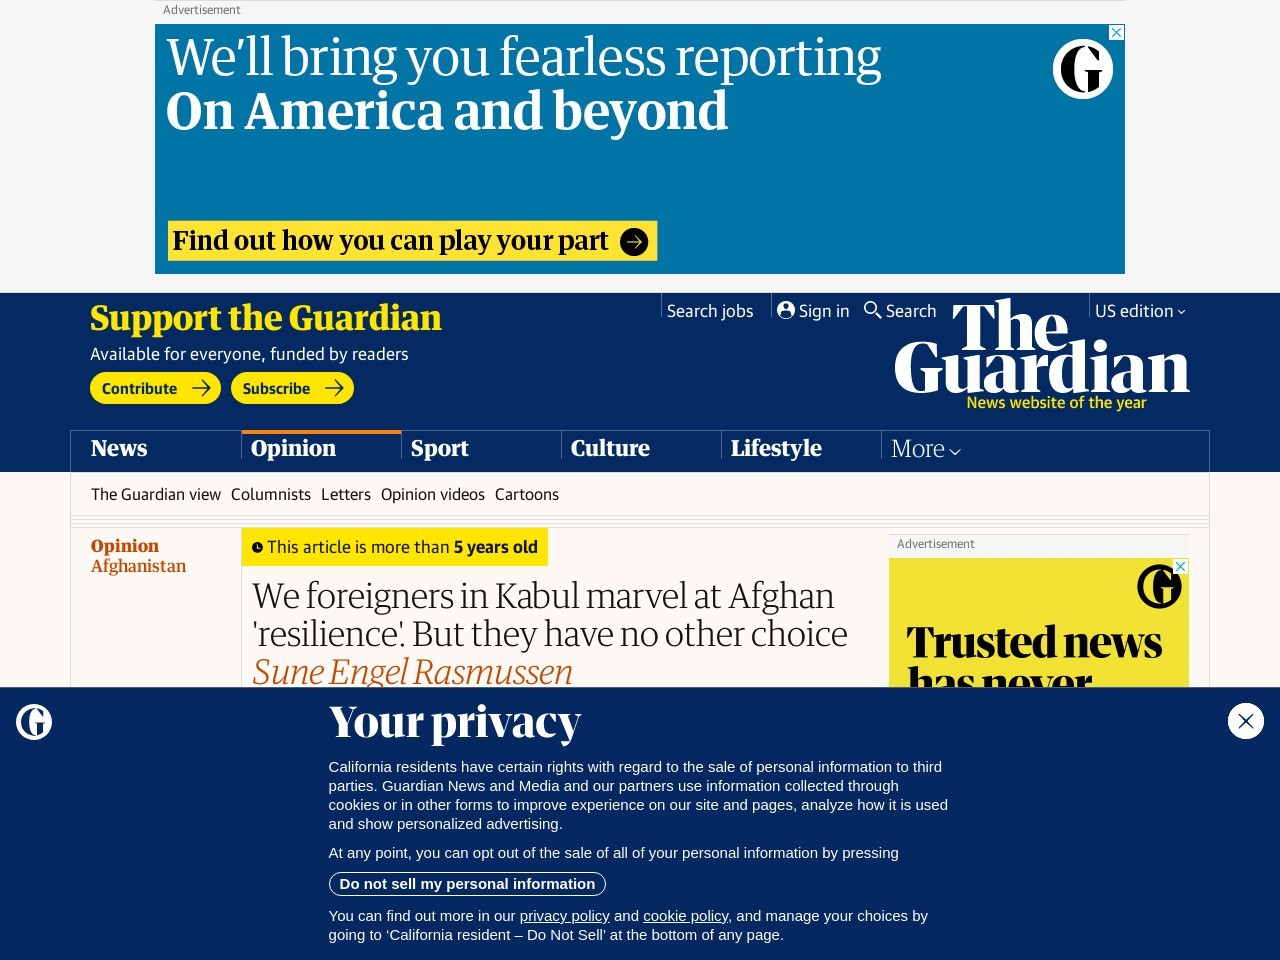 We foreigners in Kabul marvel at Afghan 'resilience'. But they have no other choice | Sune Engel Rasmussen